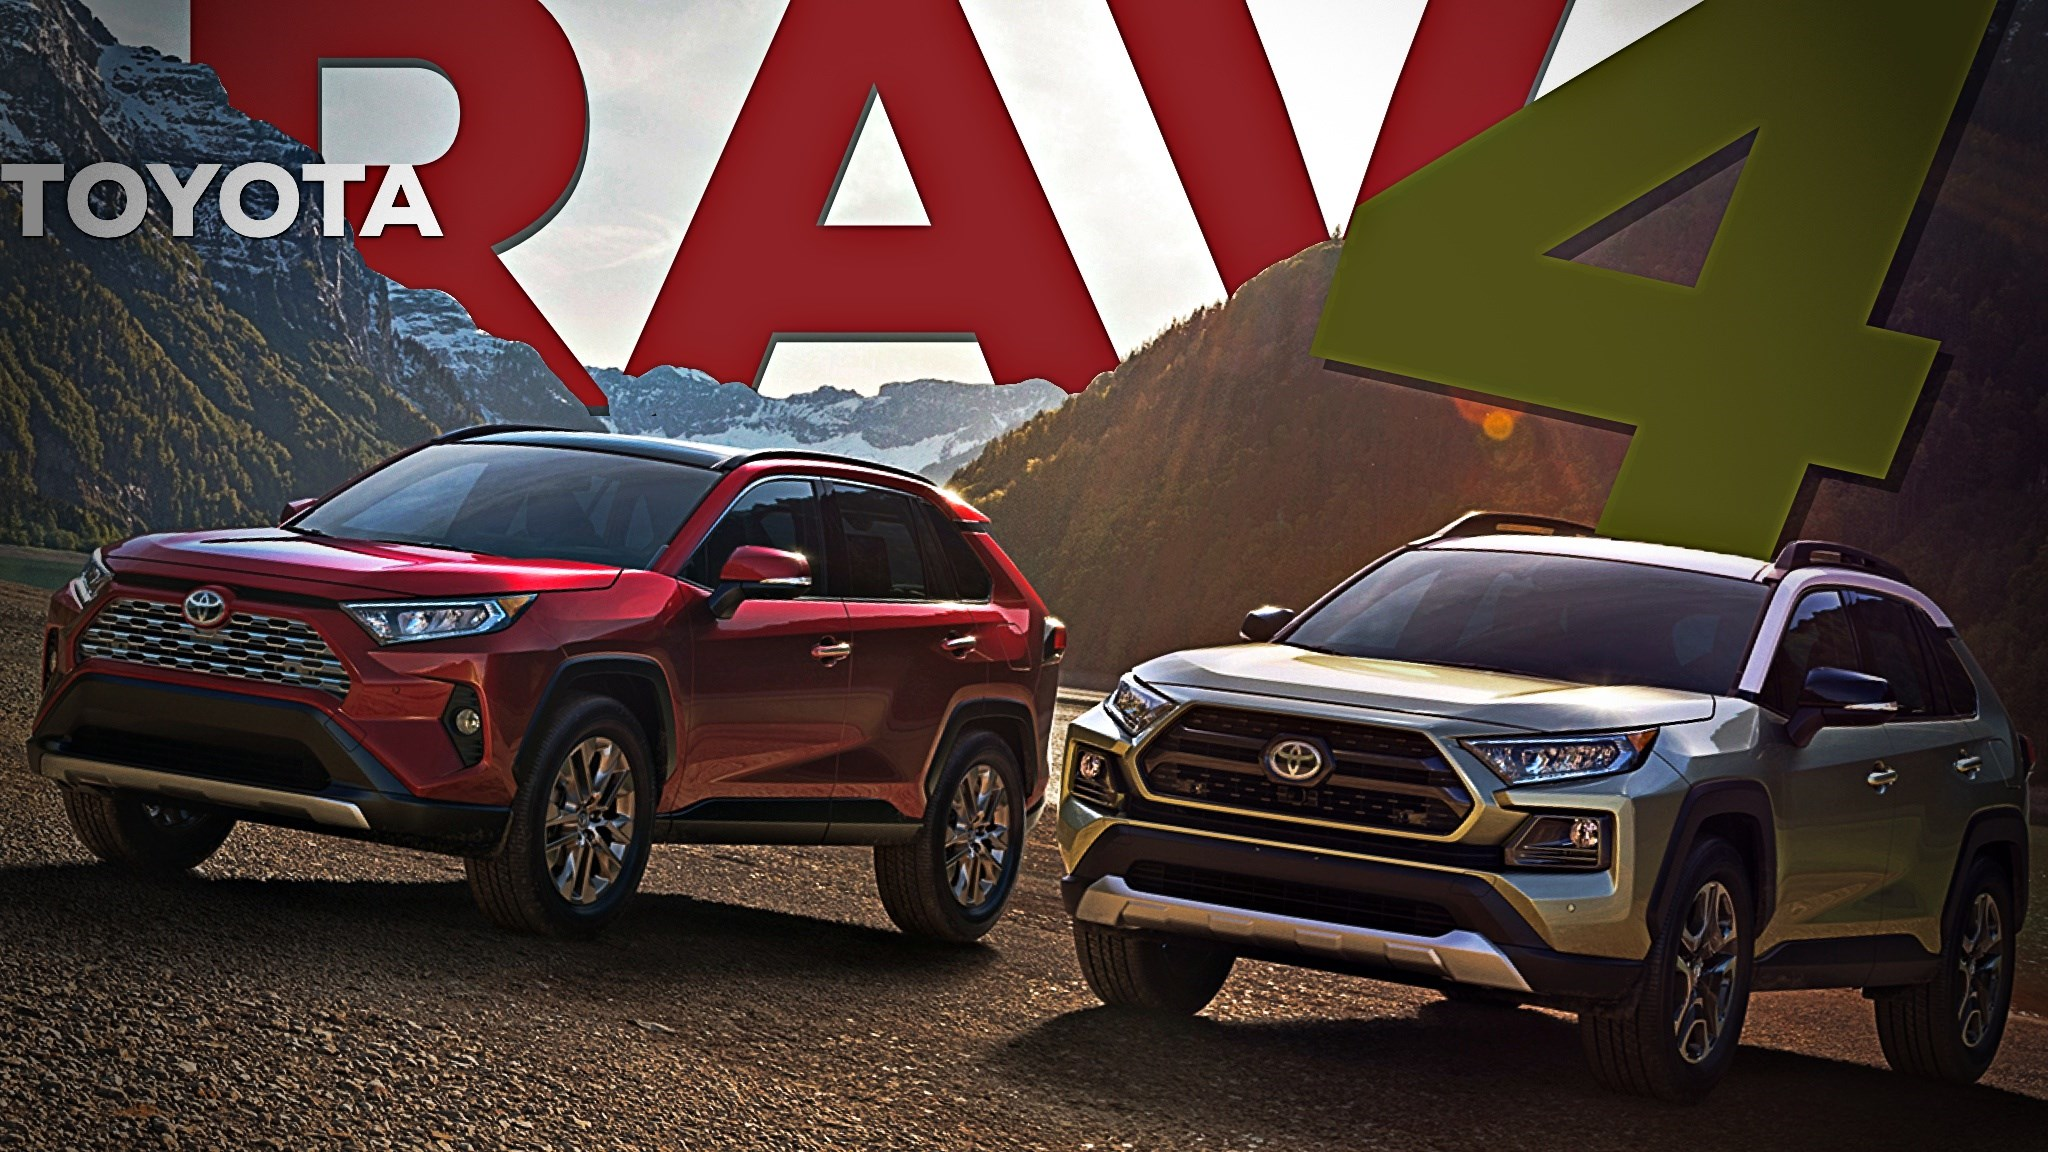 2019 Toyota RAV4 Revealed: A Proper SUV